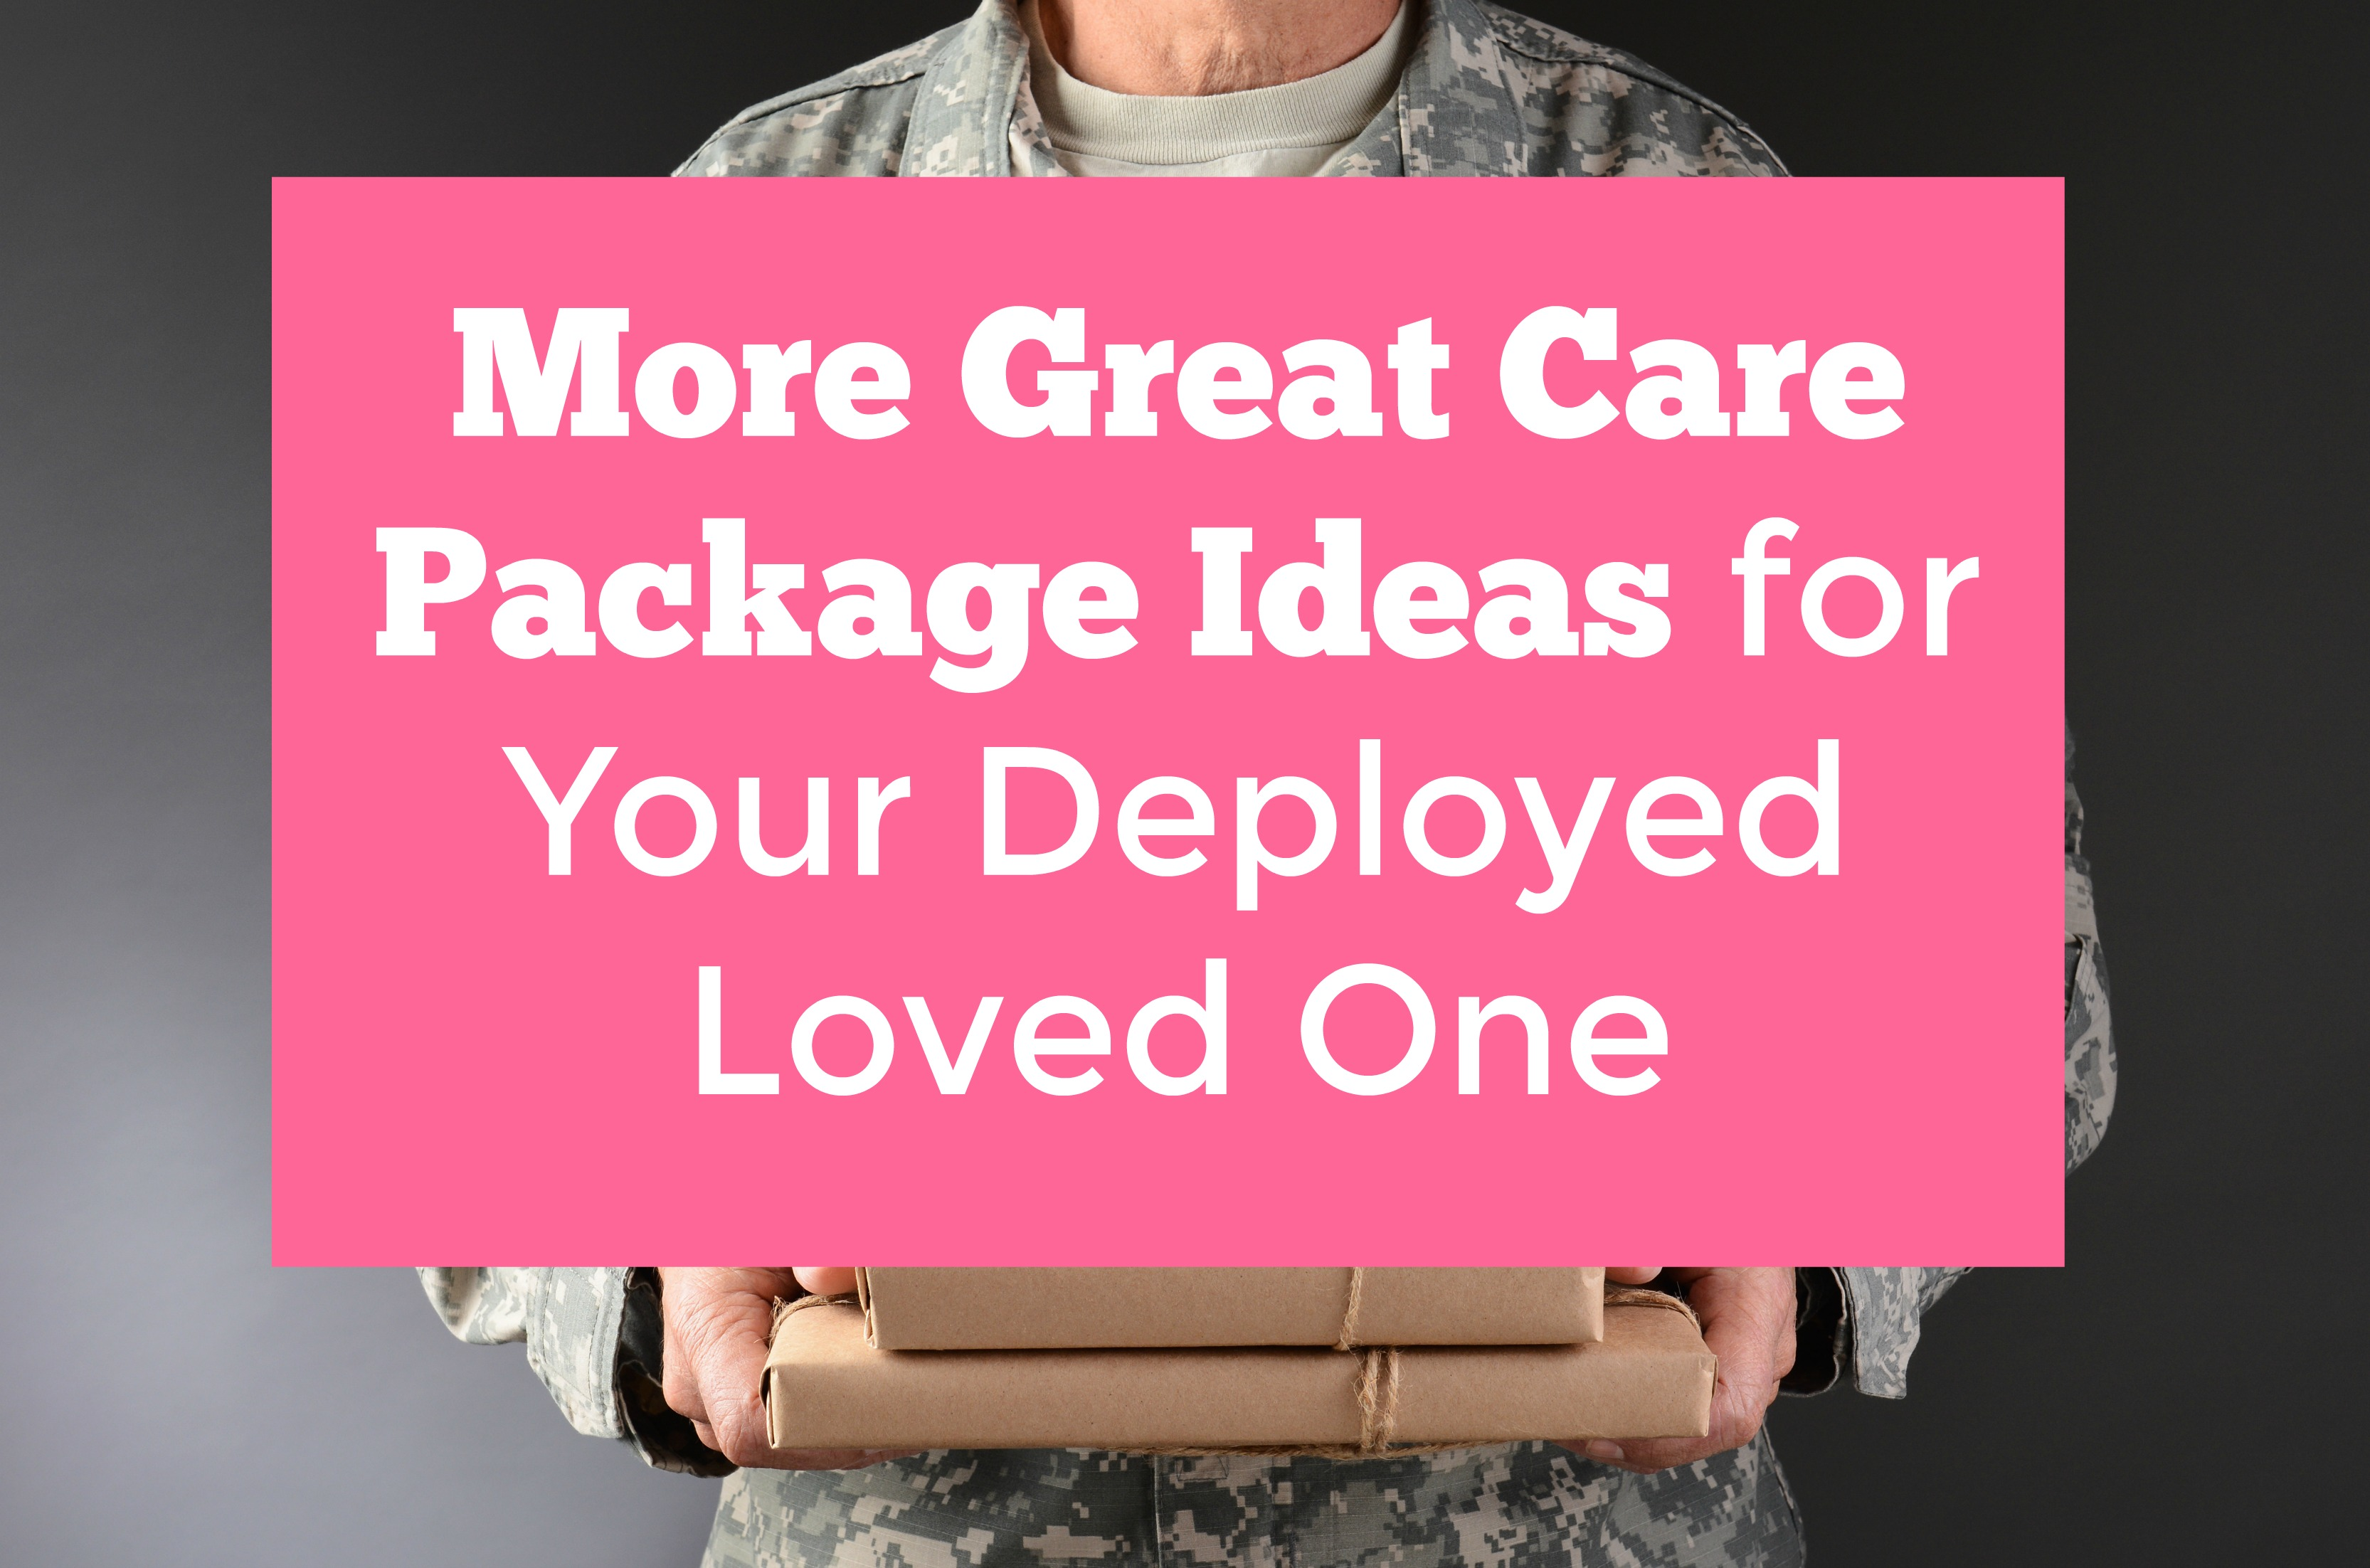 Great Care Package Ideas for Your Deployed Loved One